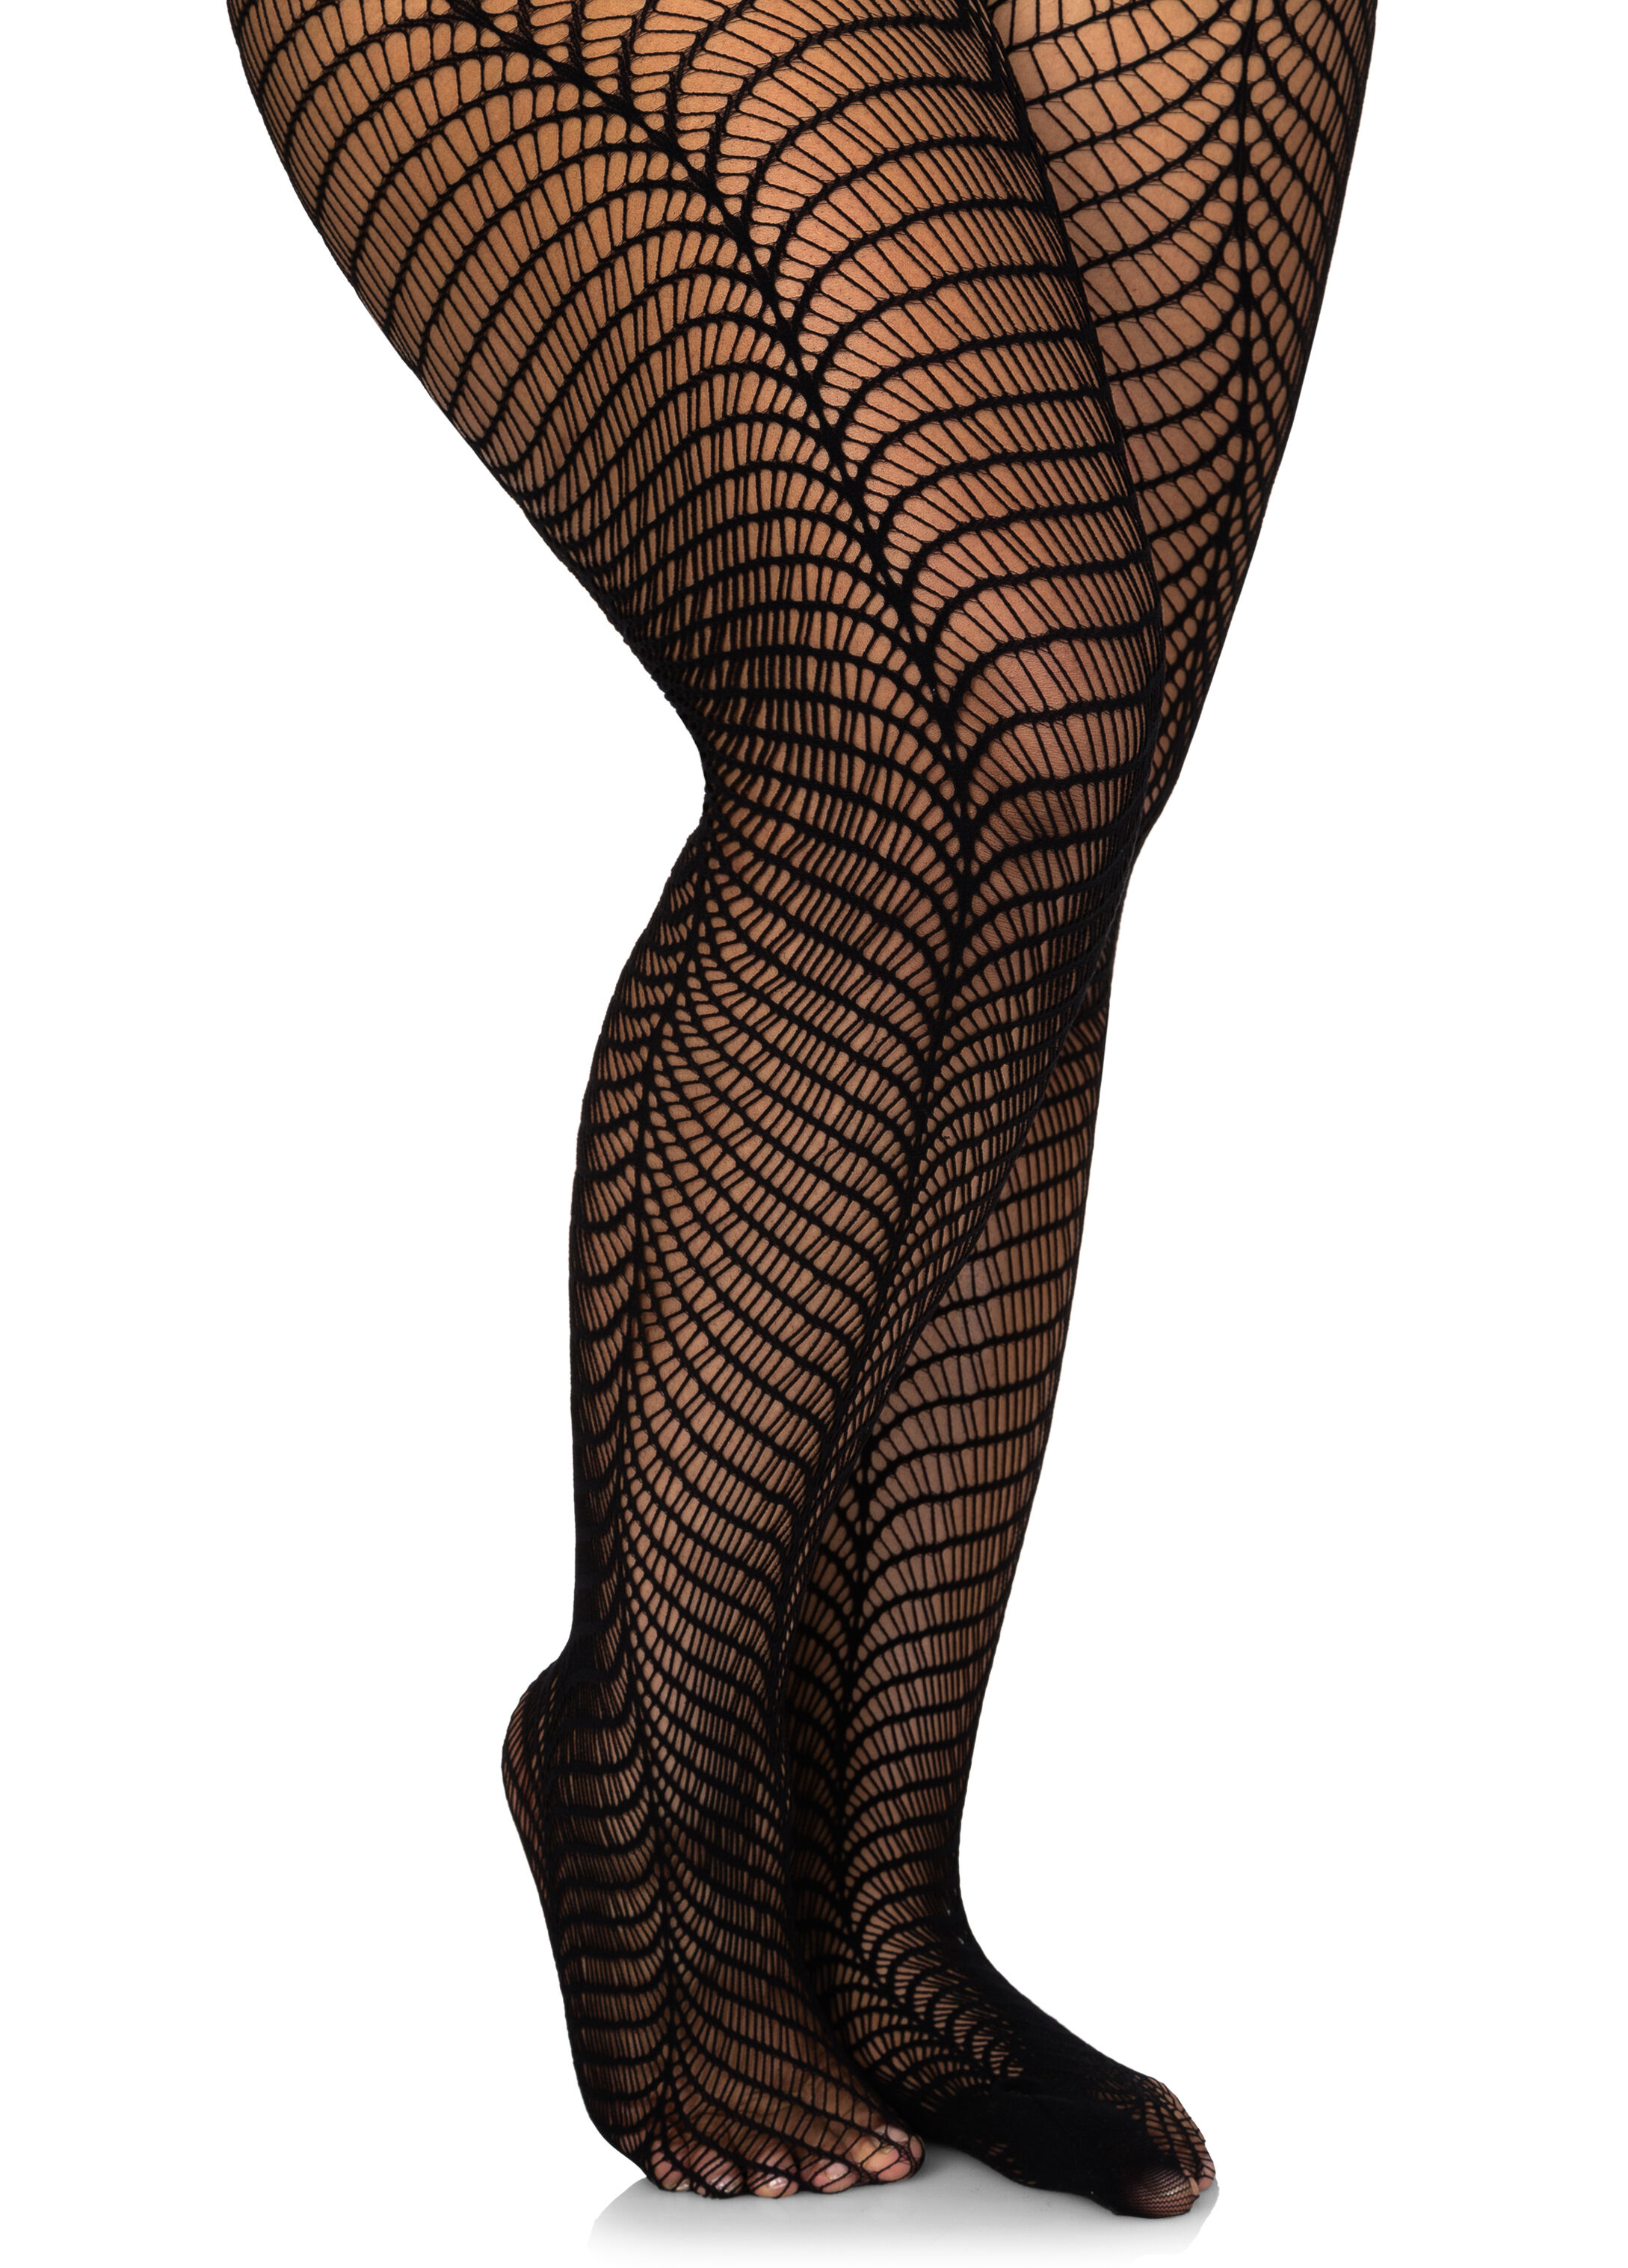 Wavy Net Footed Tights